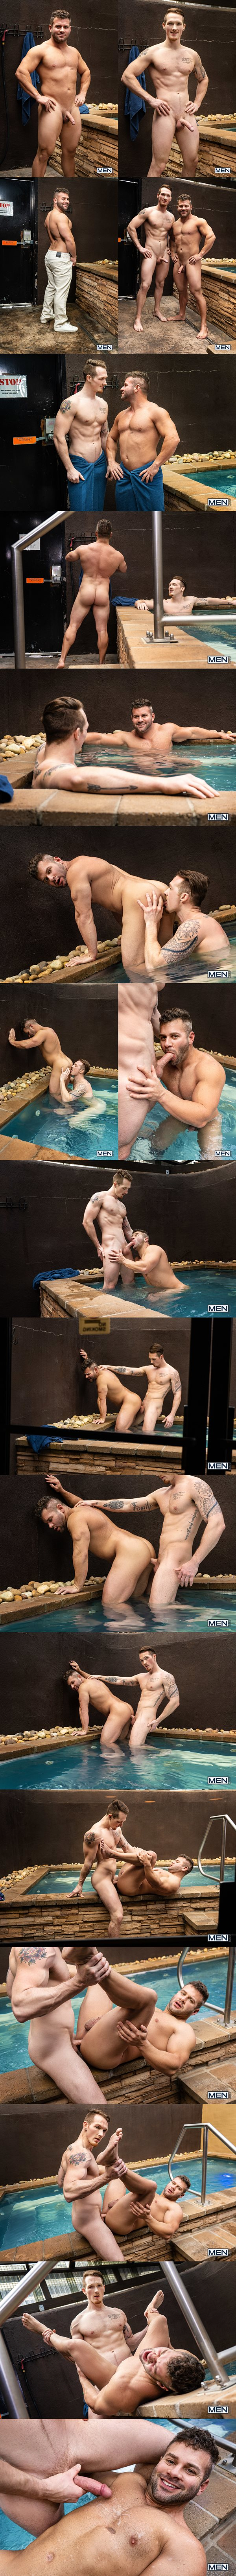 Lean fit porn star Jackson Cooper barebacks muscular newcomer Mason Max's bubble ass by the tub before they shoot their loads in Mason's bottoming debut at Men 01